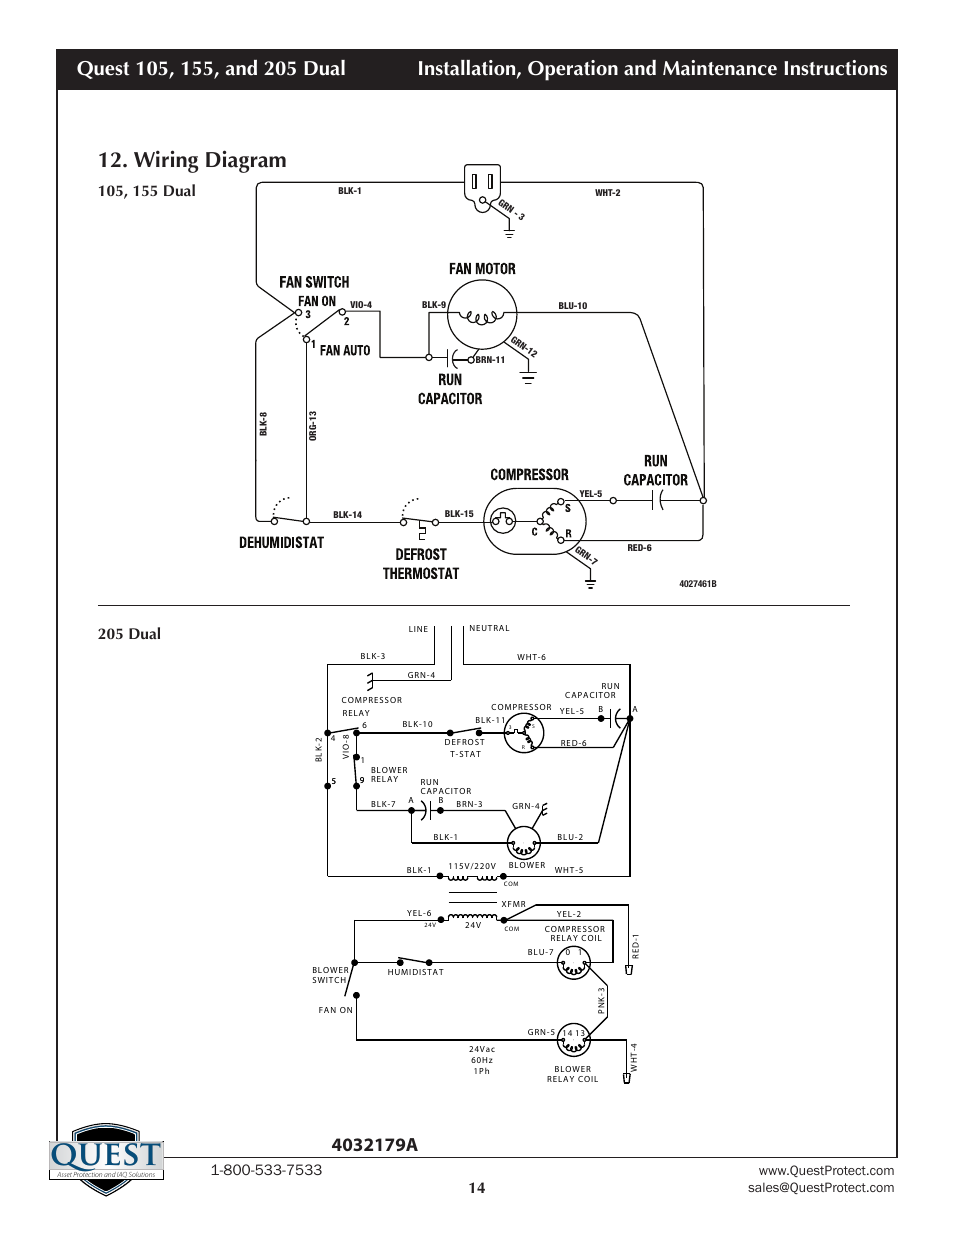 Quest, Wiring diagram | Sunlight Supply Quest Dual 155 Overhead Dehumidifier  User Manual | Page 14 / 15